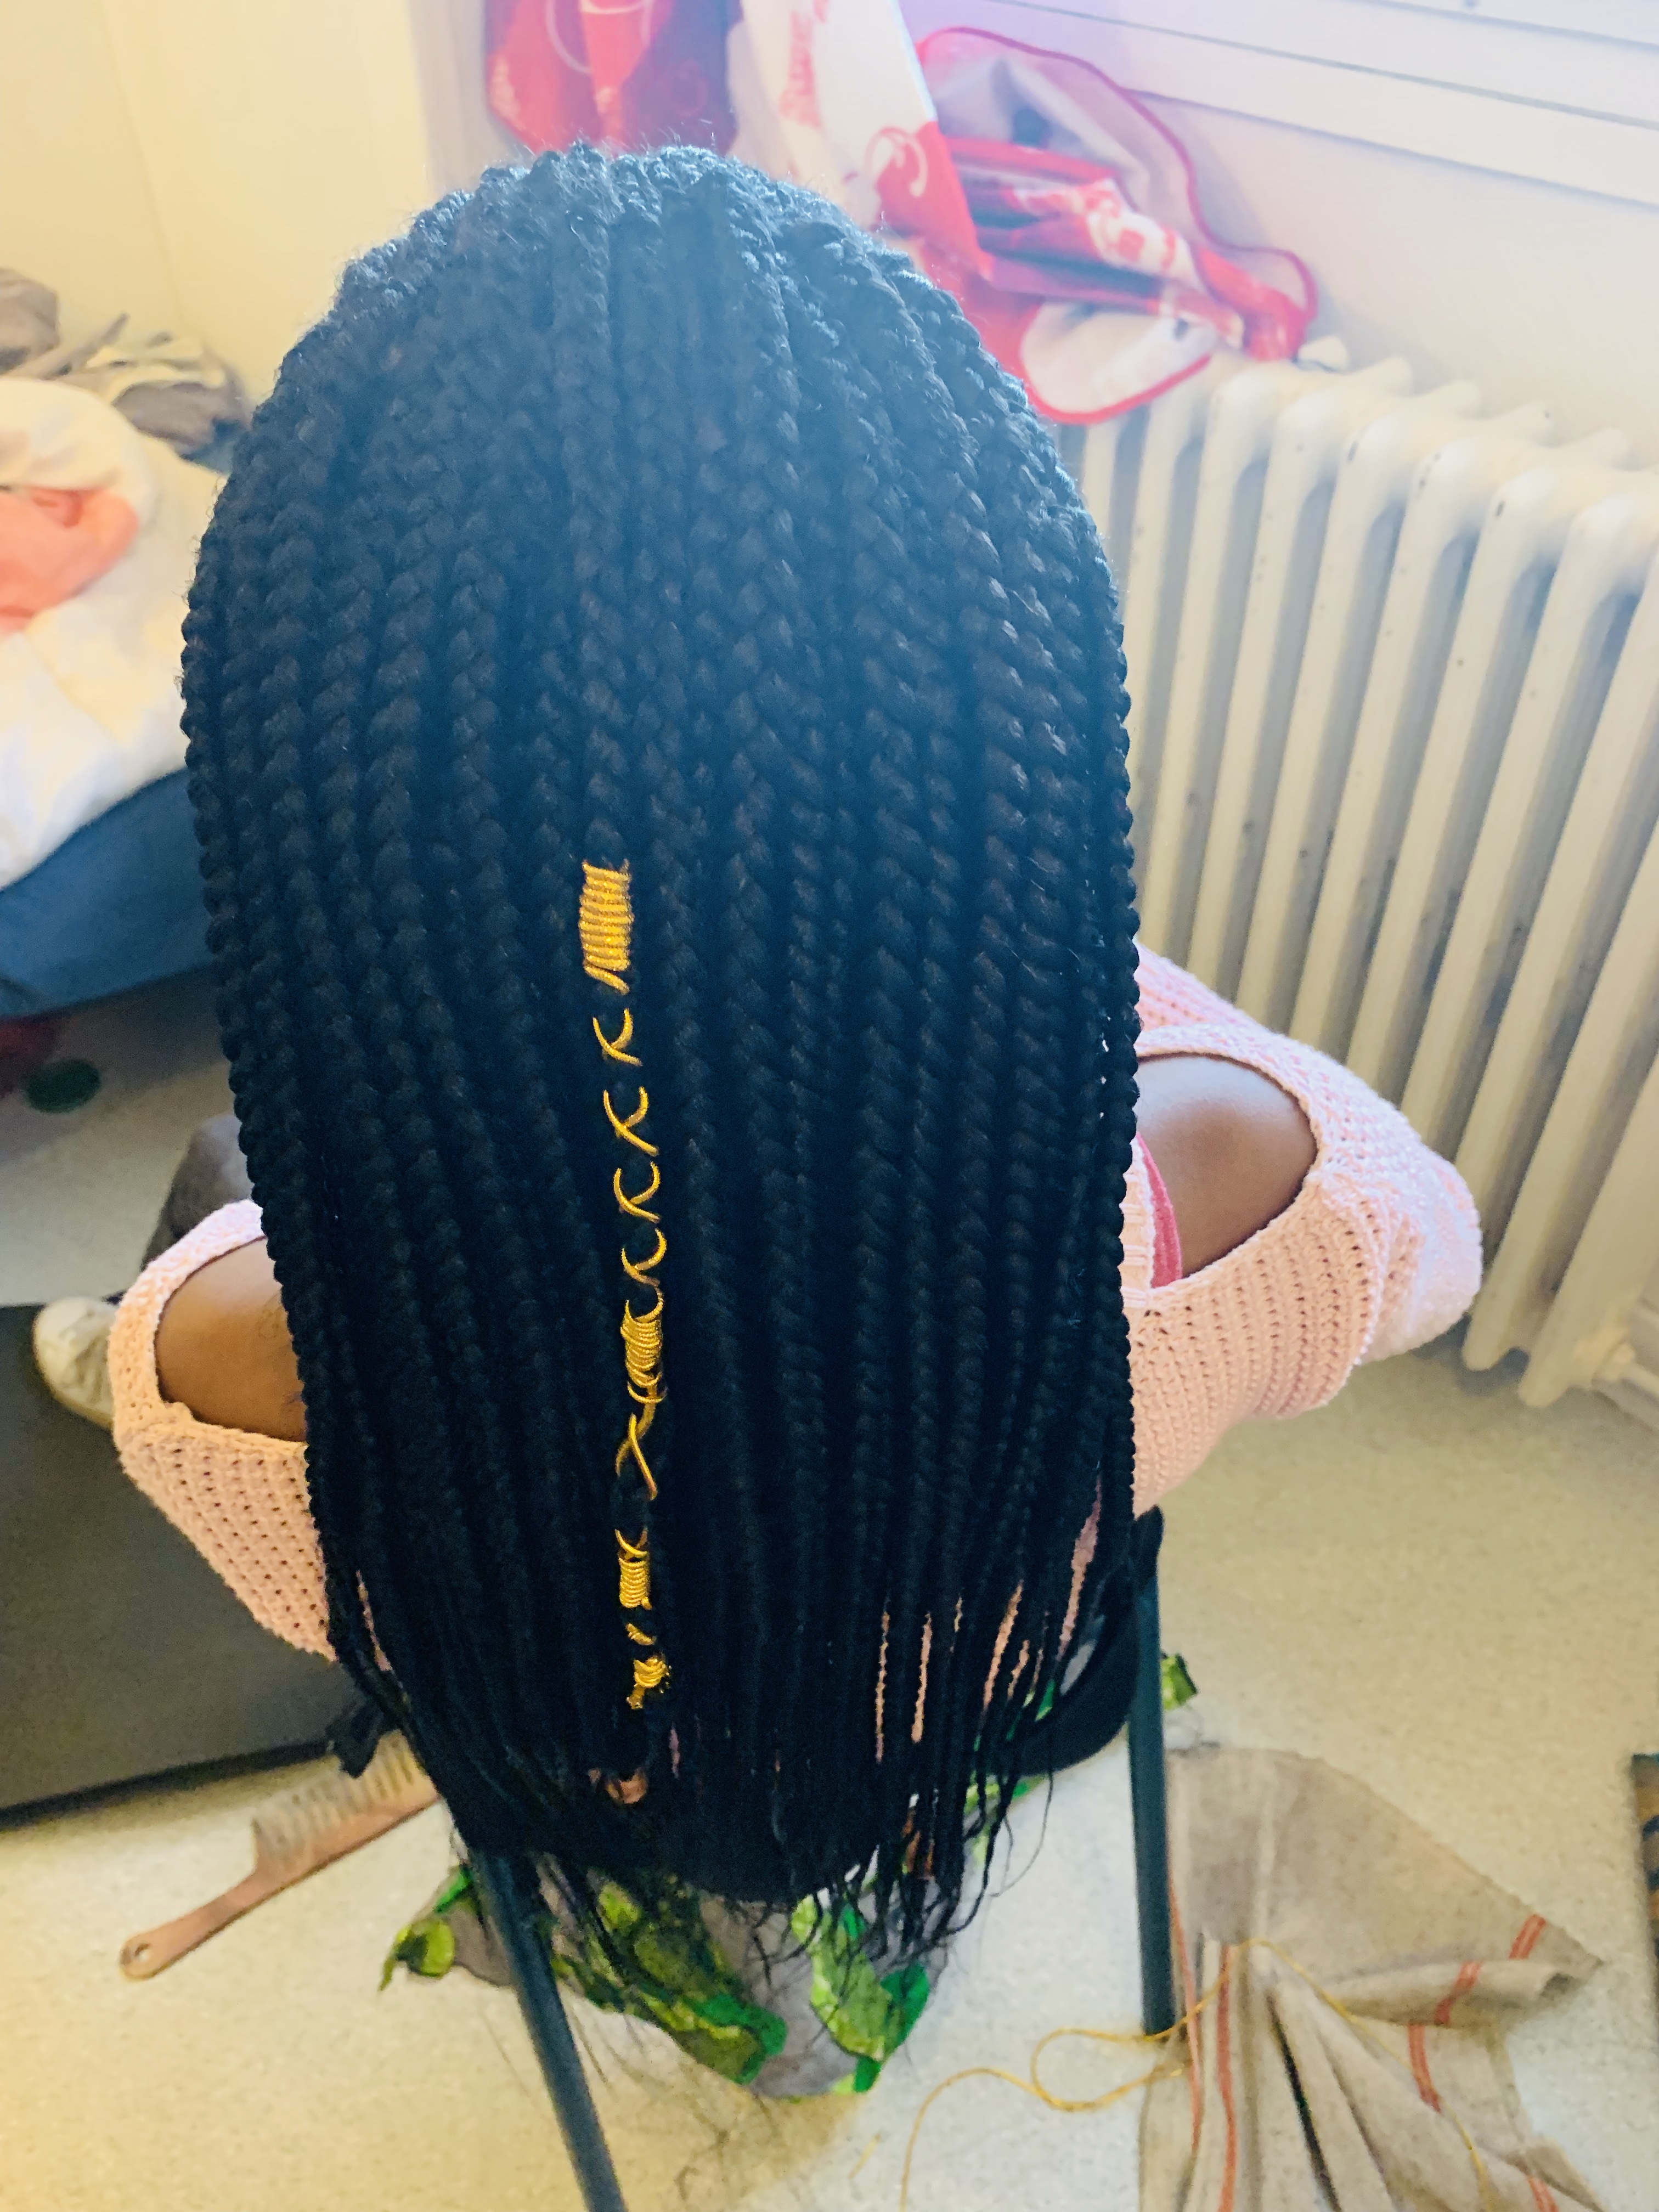 salon de coiffure afro tresse tresses box braids crochet braids vanilles tissages paris 75 77 78 91 92 93 94 95 OEMTYYUG